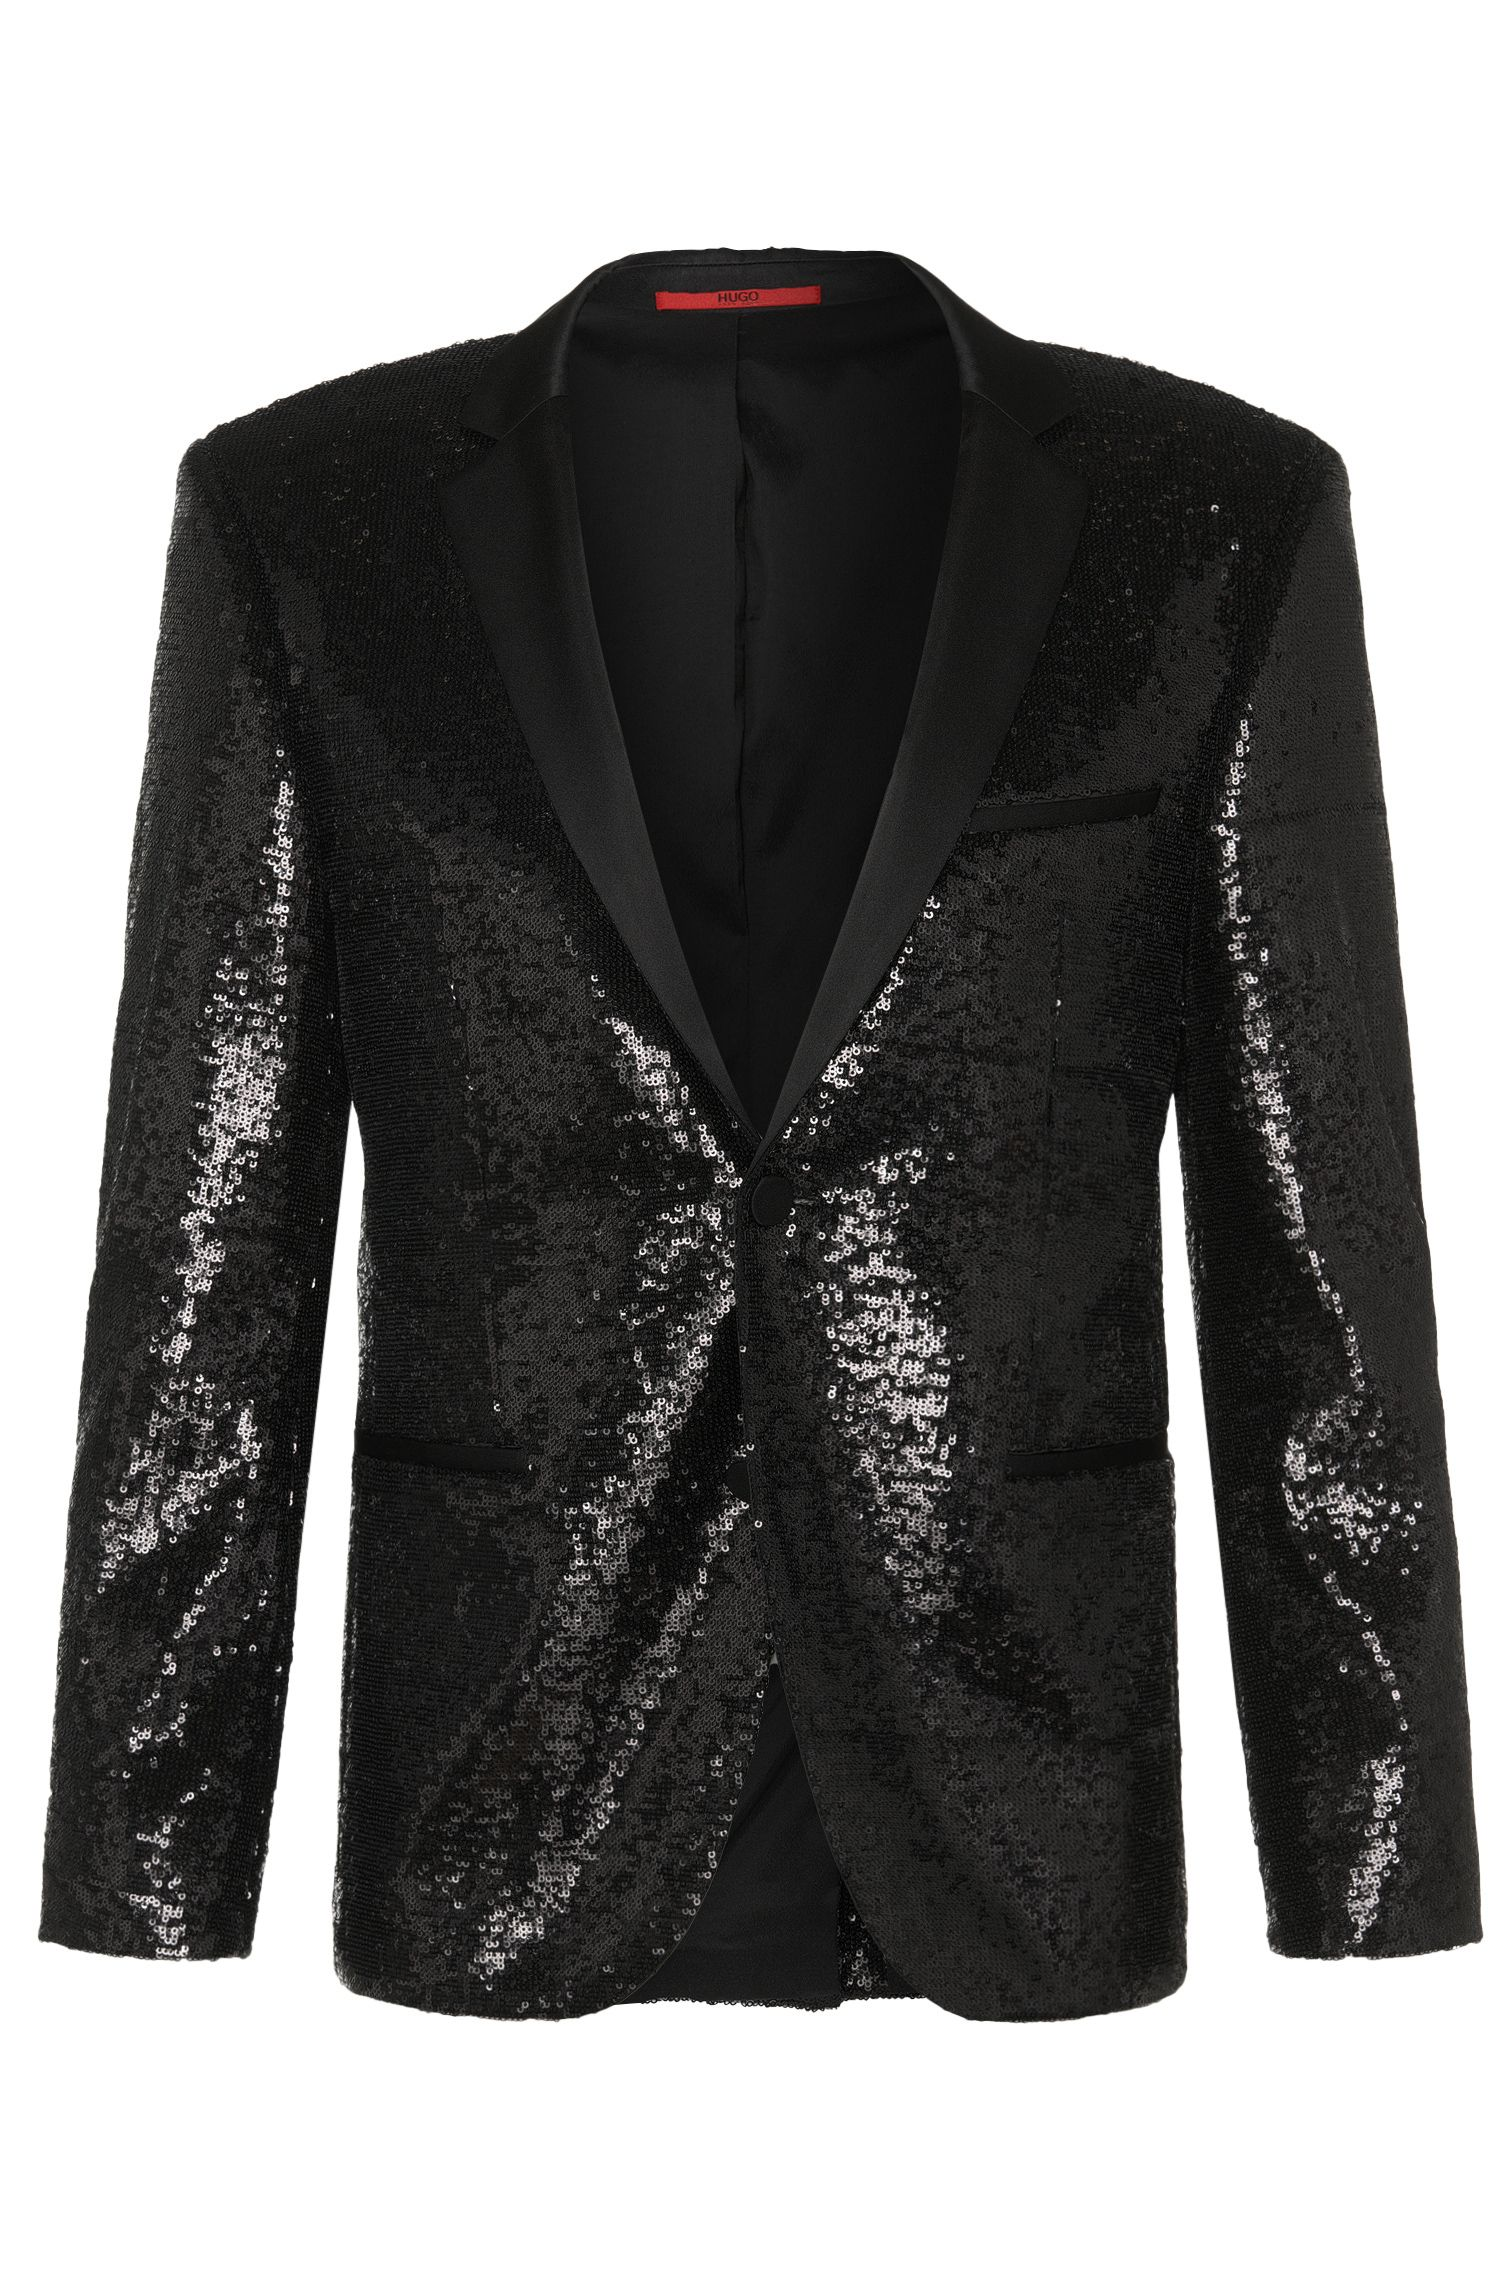 'Adris Sequins' | Extra Slim Fit, Stretch Satin Sequin Sport Coat